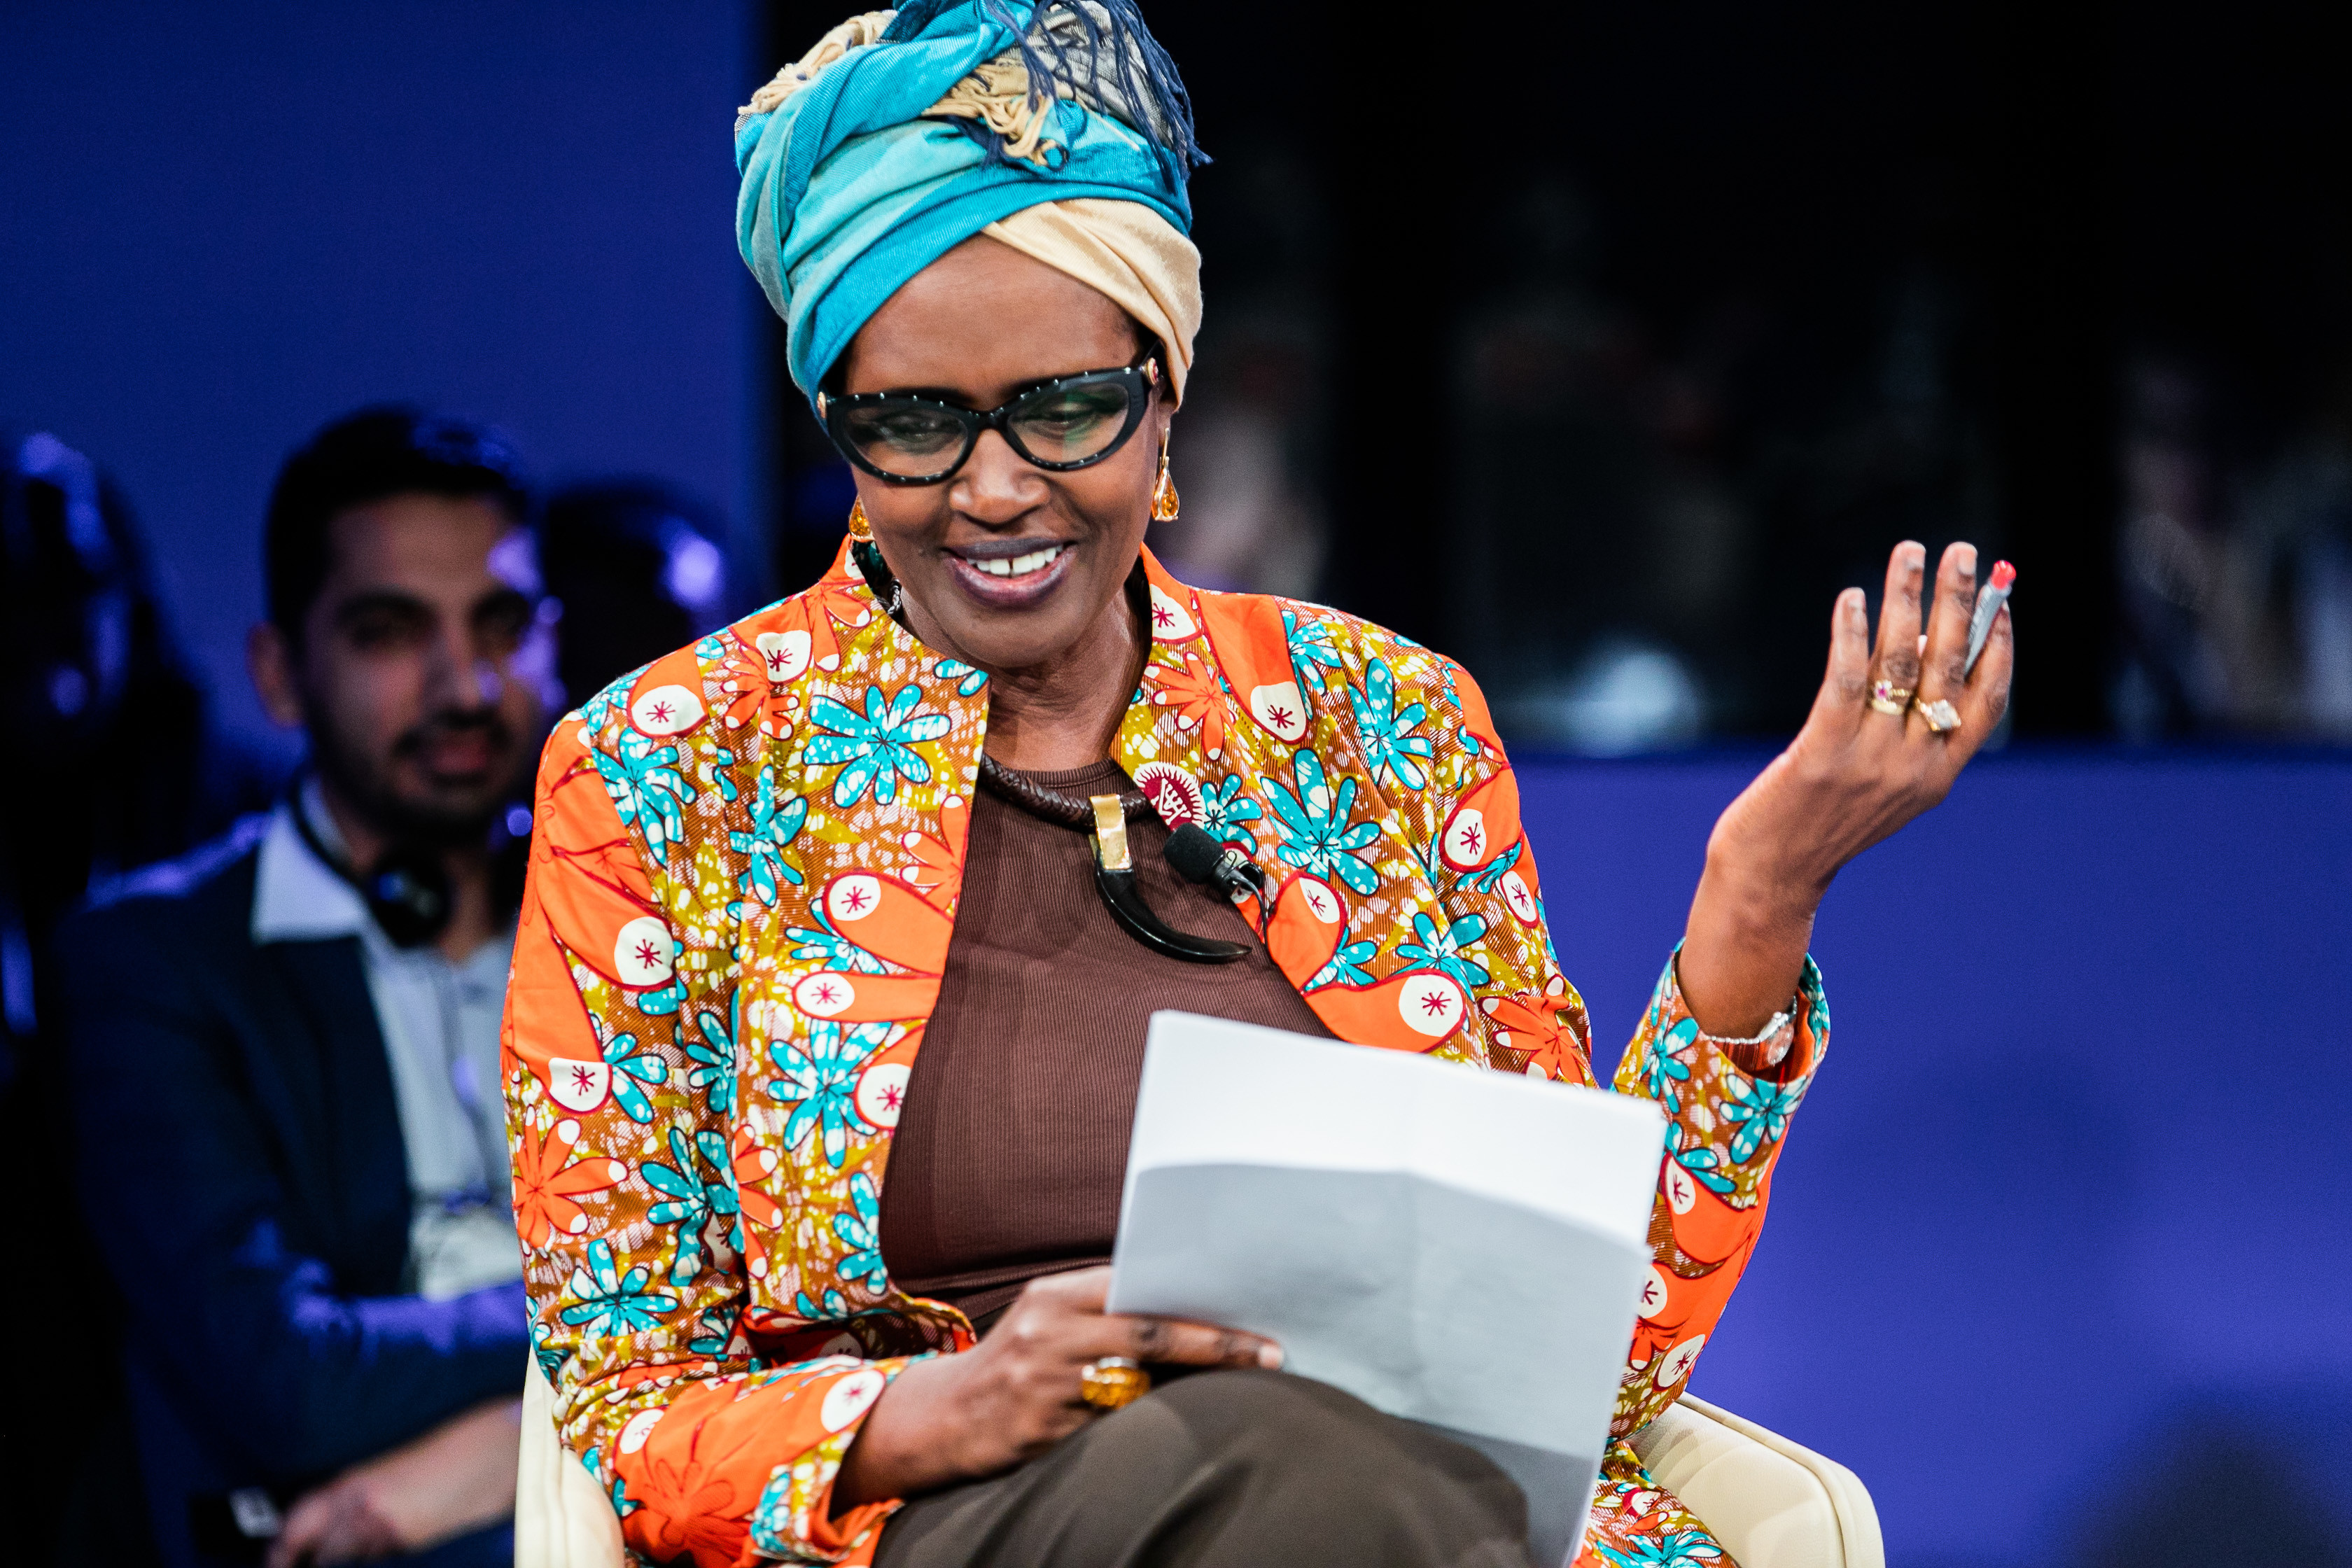 Winnie Byanyima, Executive Director, Oxfam International, Kenya speaking during the session The Gig Economy  at the World Forum World Economic Forum on Africa 2019. Copyright by World Economic Forum / Jakob Polacsek